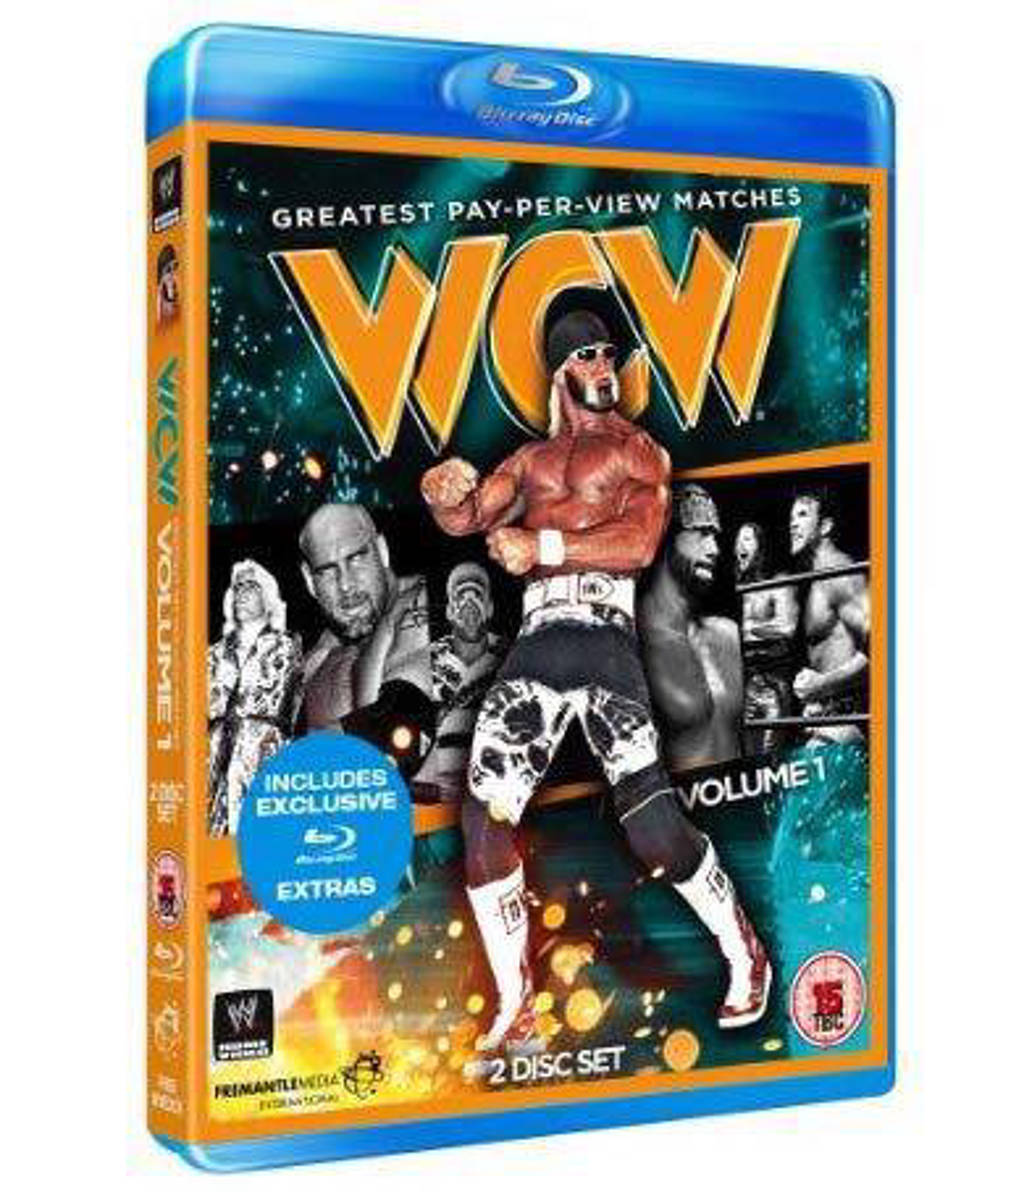 WWE - WCW greatest PPV matches vol 1 (Blu-ray)